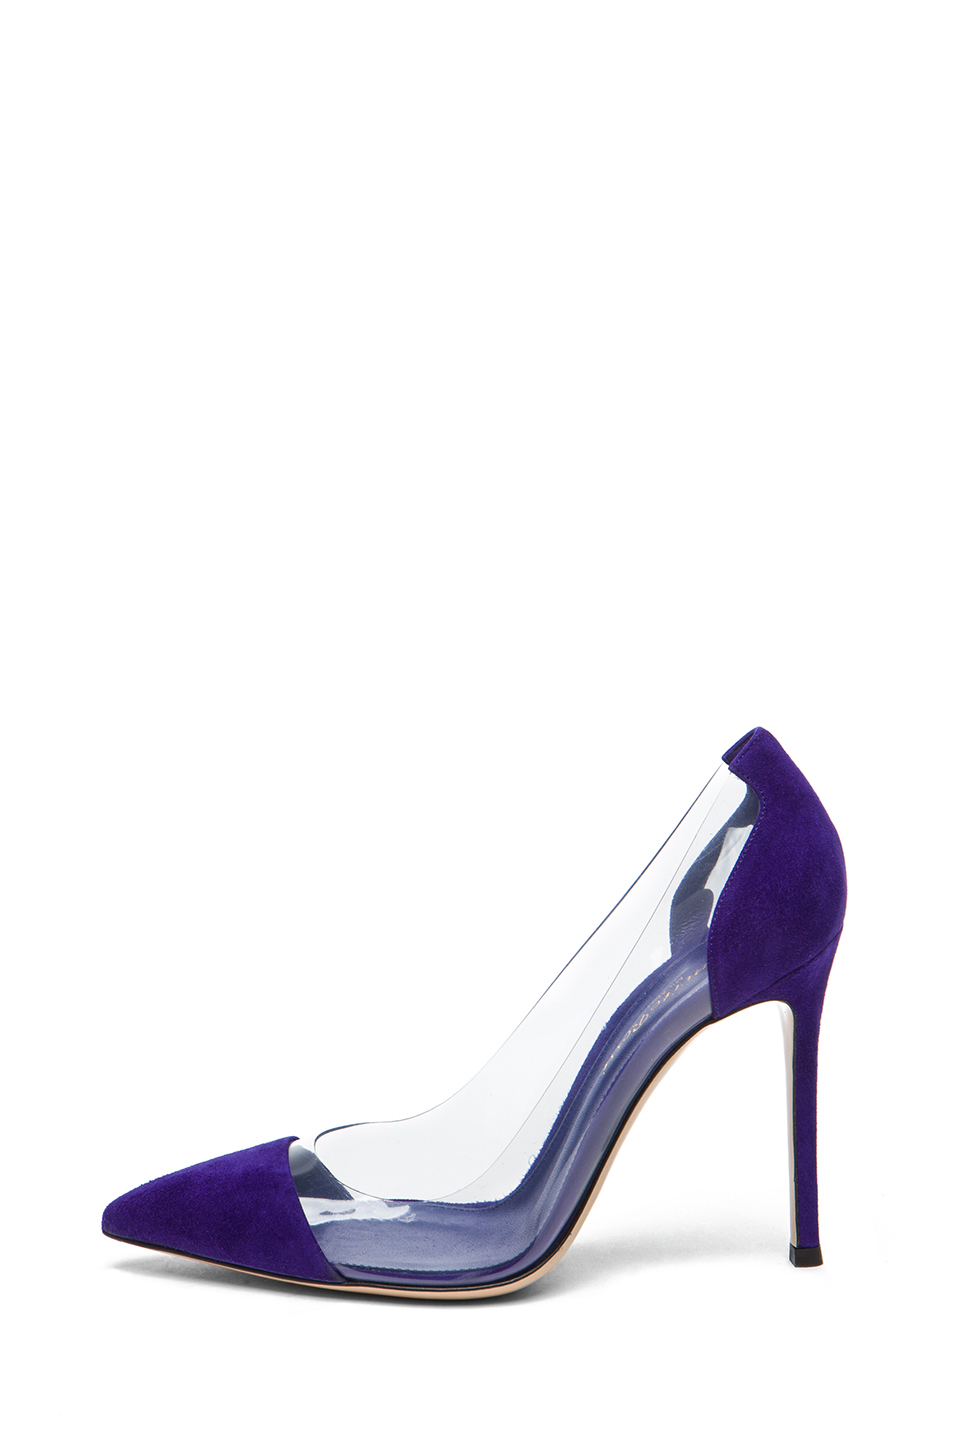 Gianvito Rossi|Plexy Suede Laser Pump in Indigo